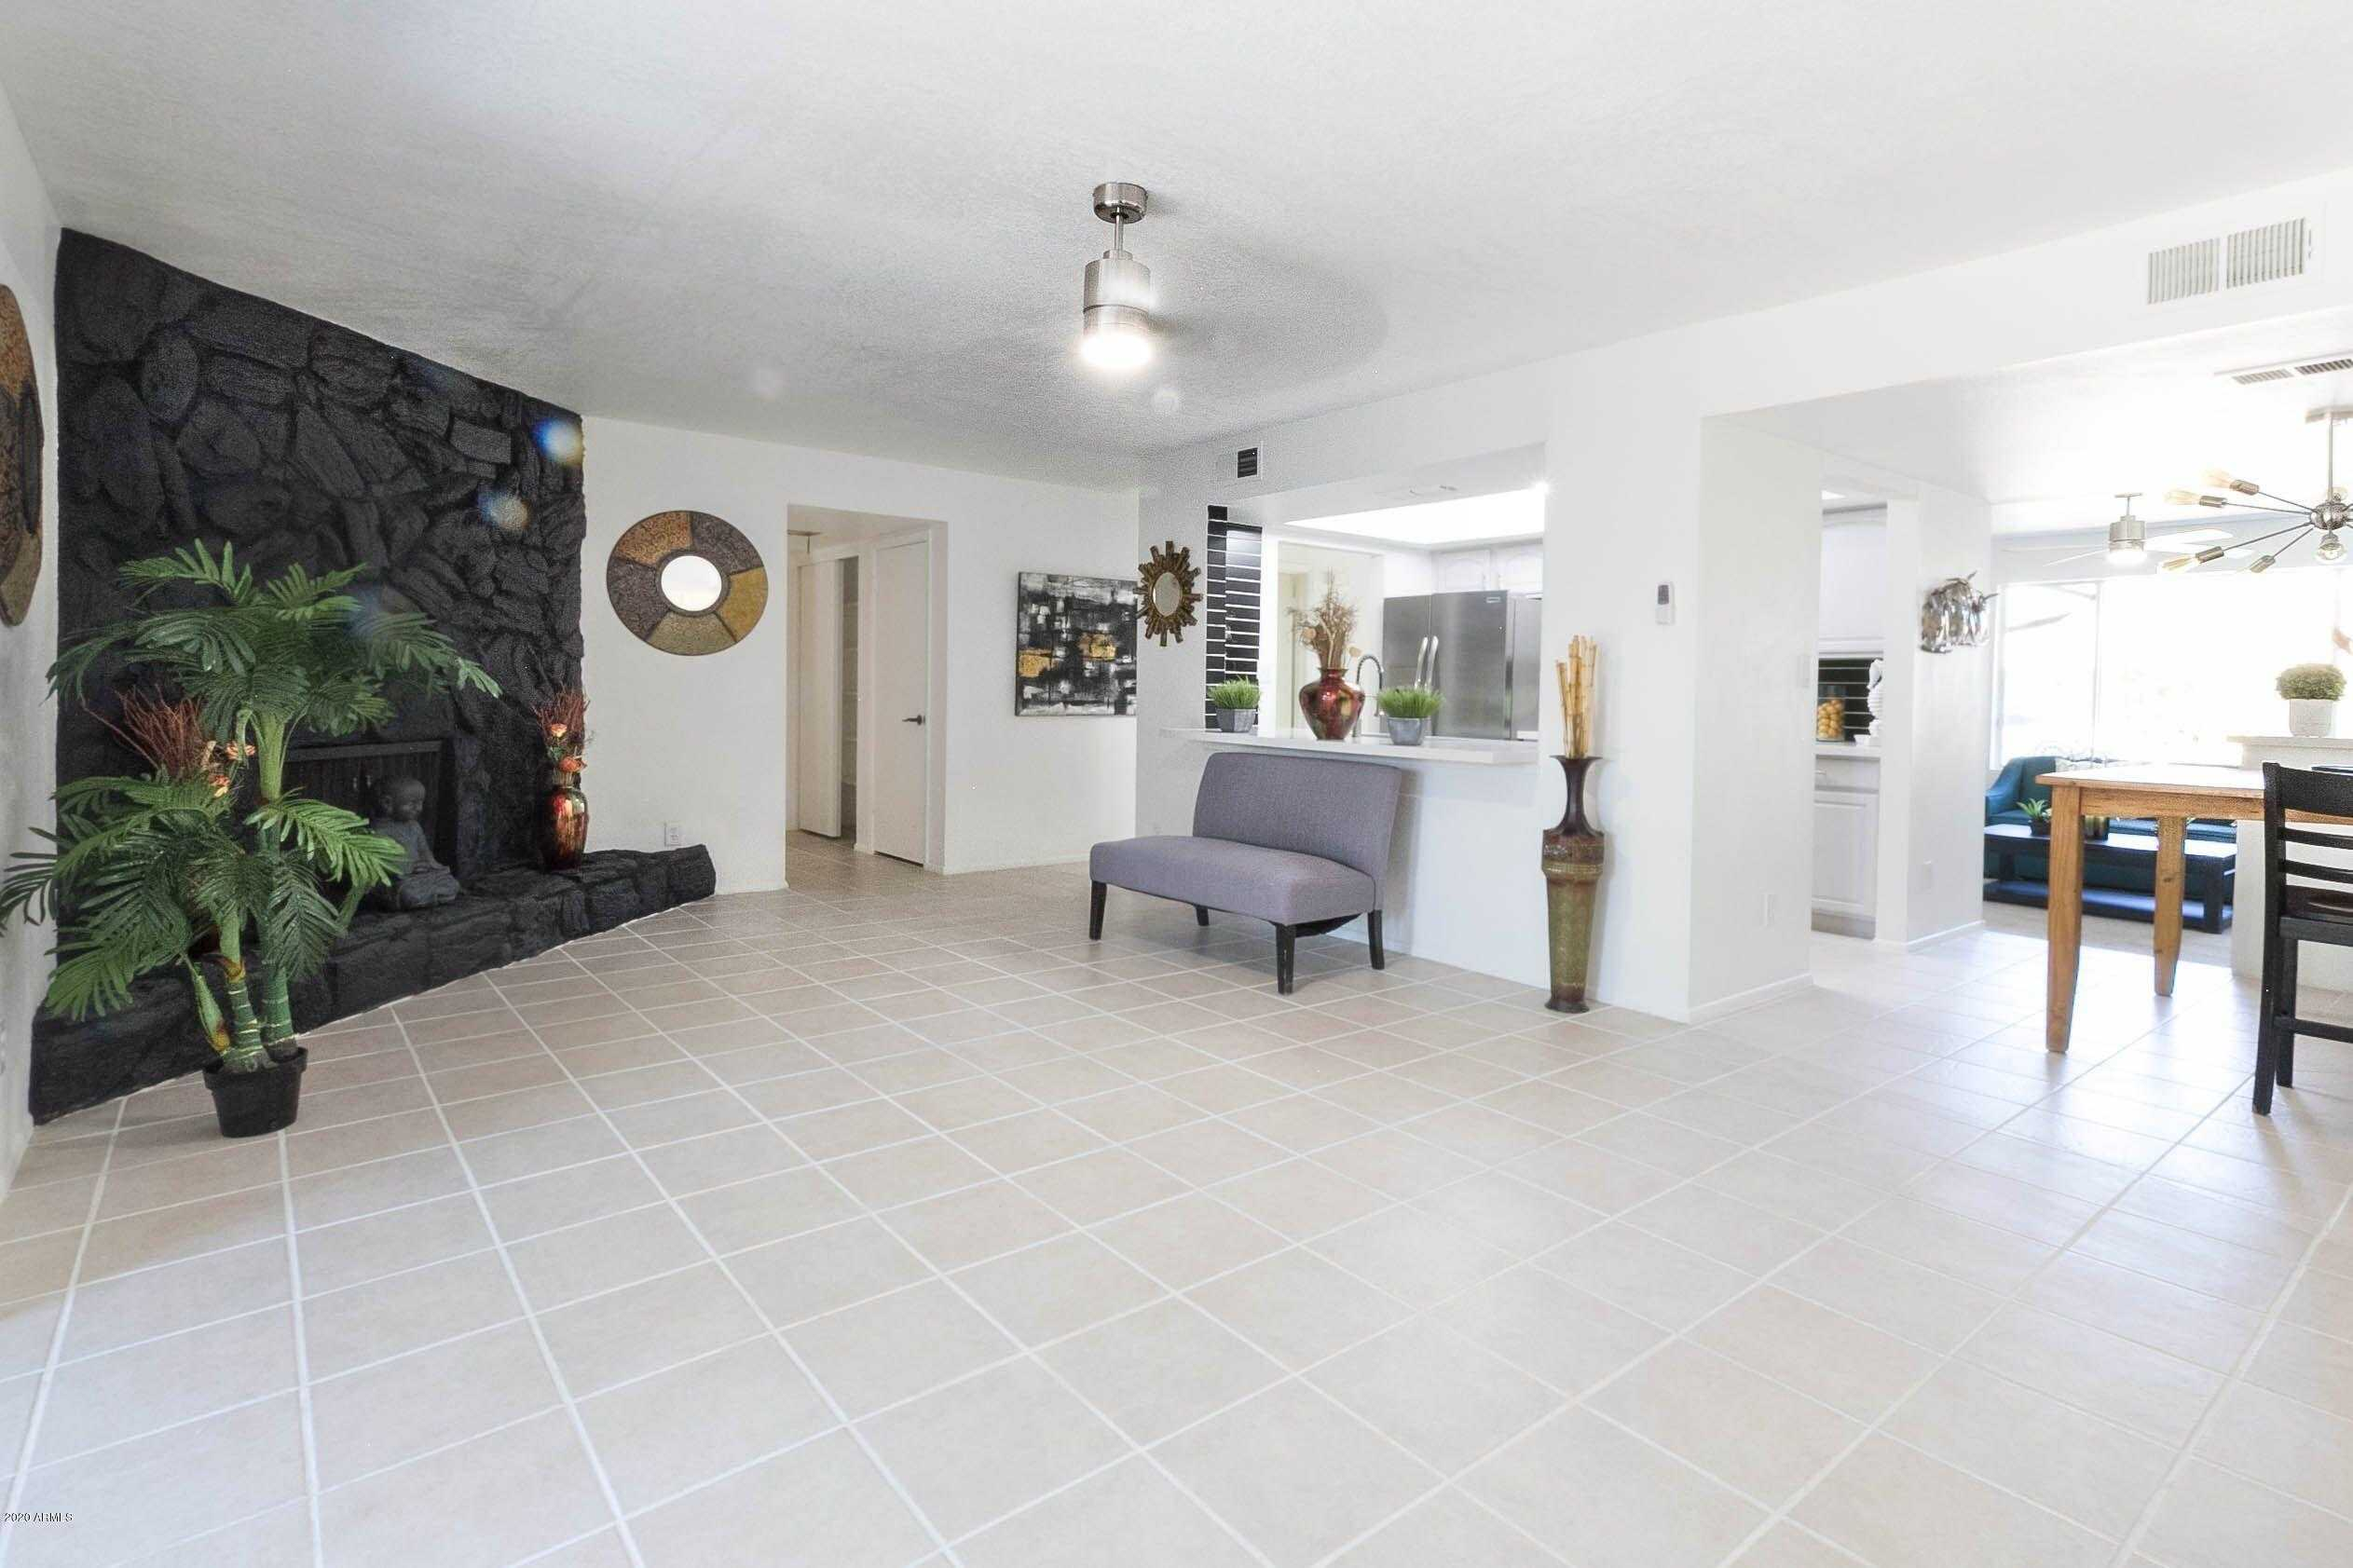 $277,500 - 3Br/2Ba - Home for Sale in Mountain View Meadows Four Lot 270-399, Glendale